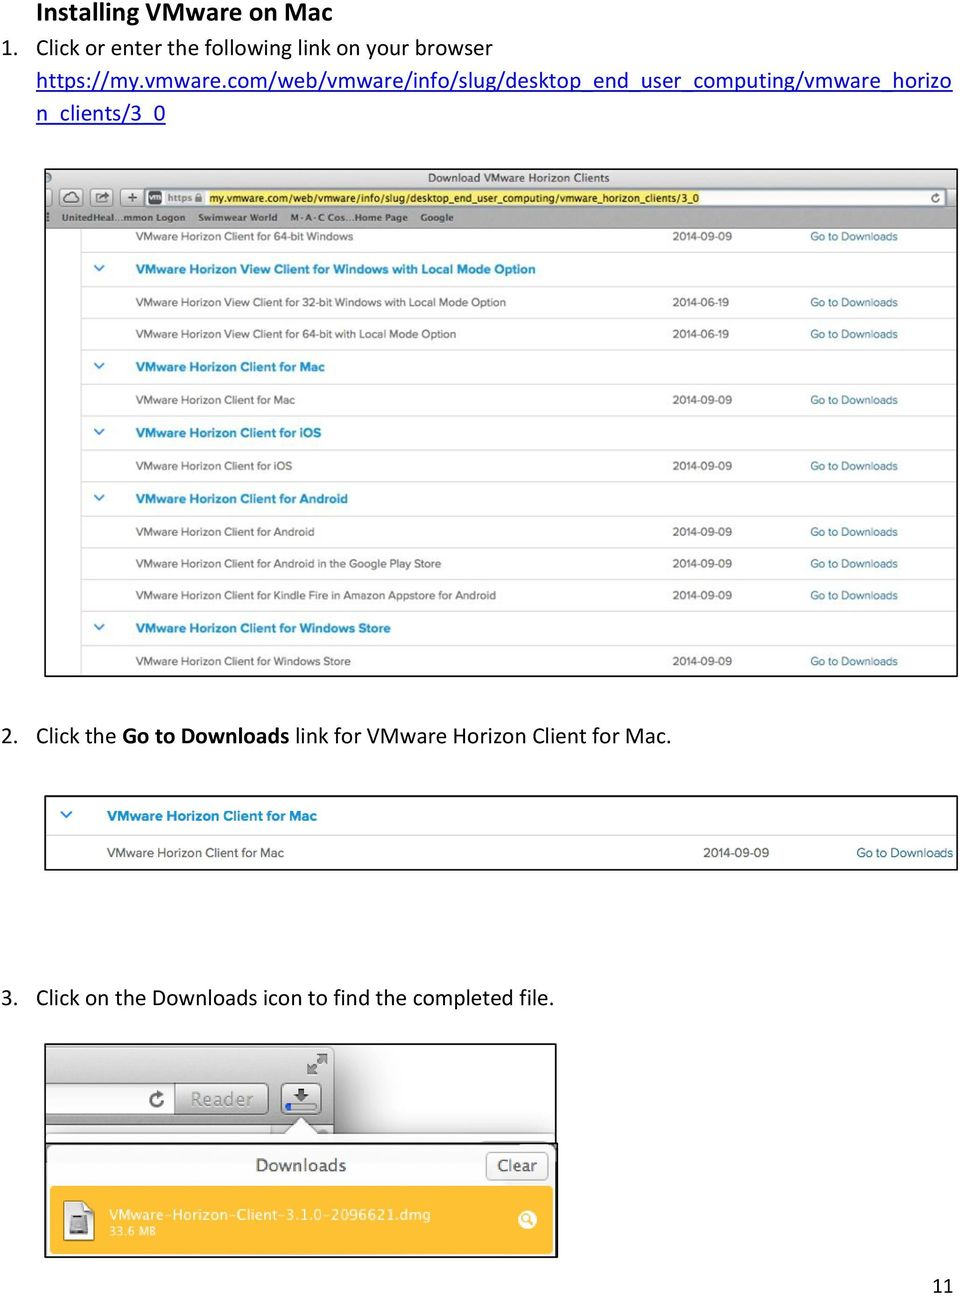 Installing the VMware Horizon View Client to Access Hoag